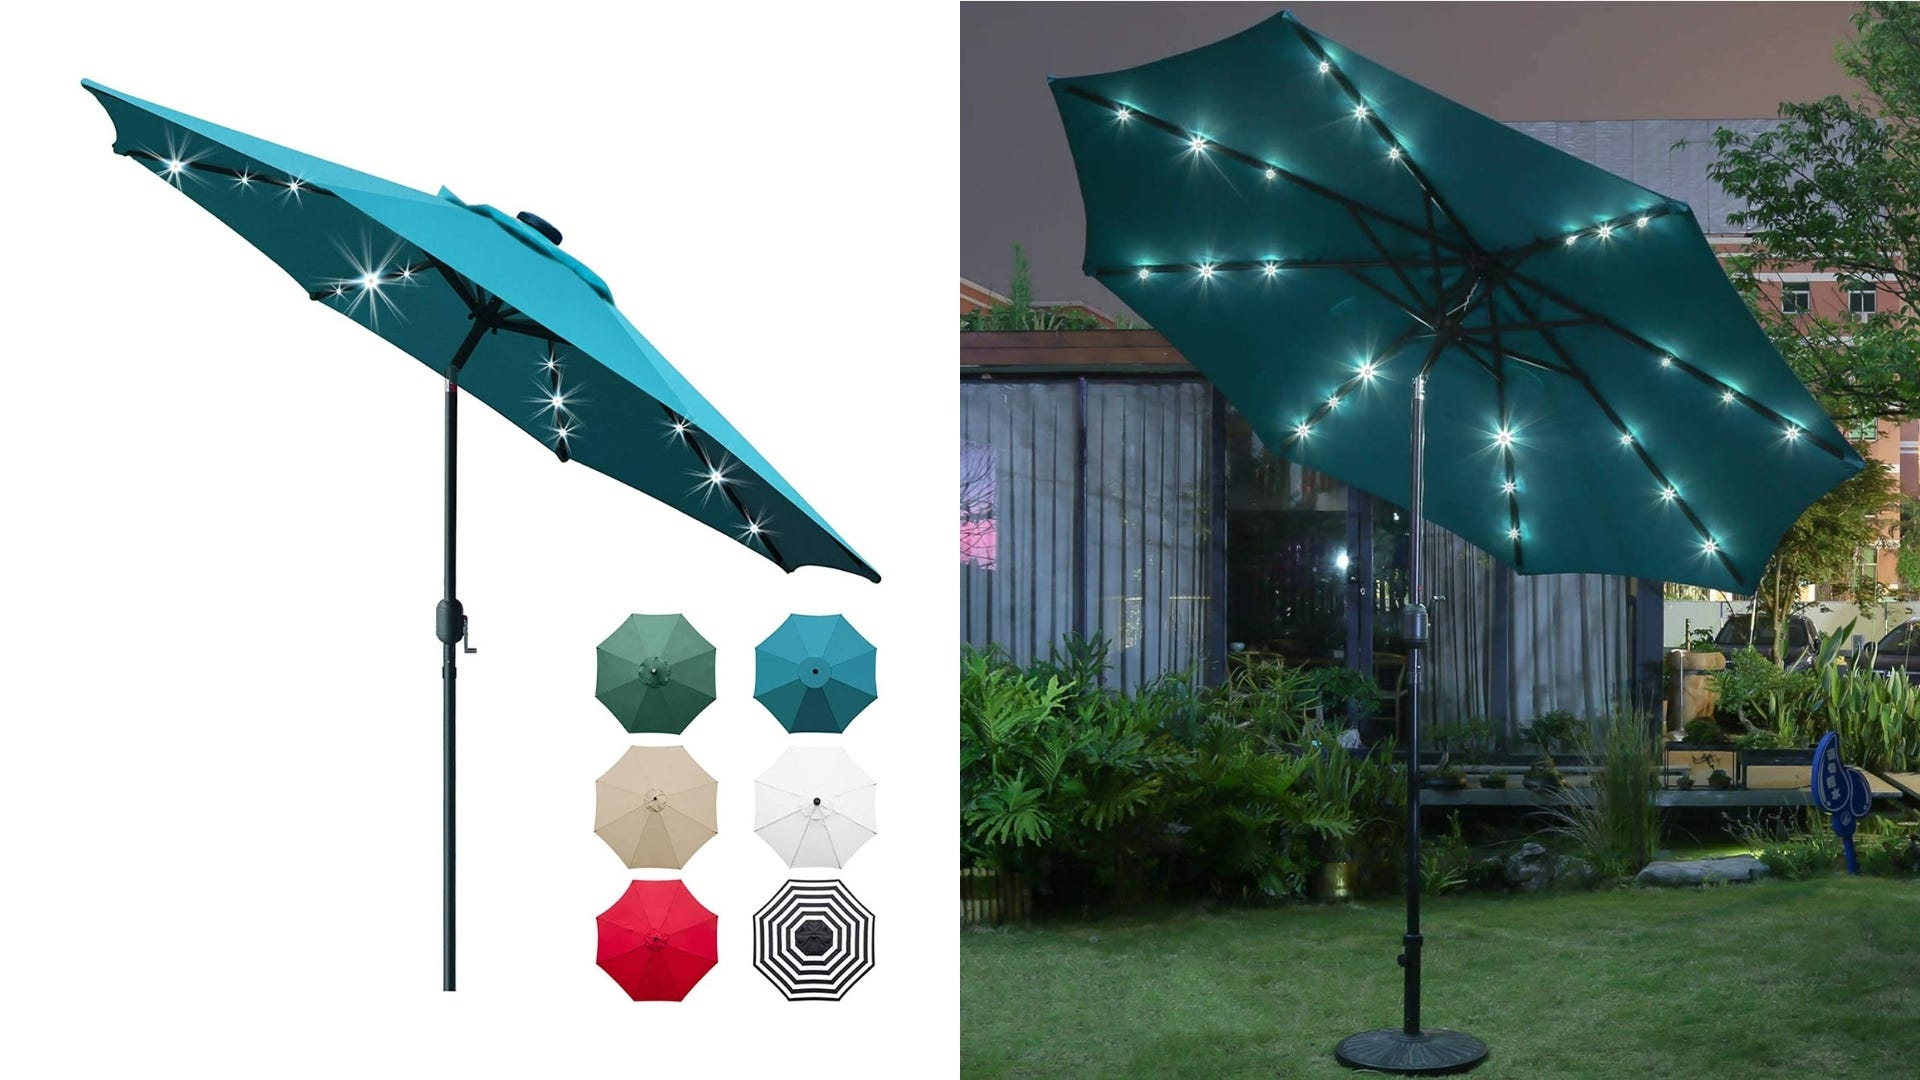 A blue outdoor umbrella on a white background and outside in someone's yard.